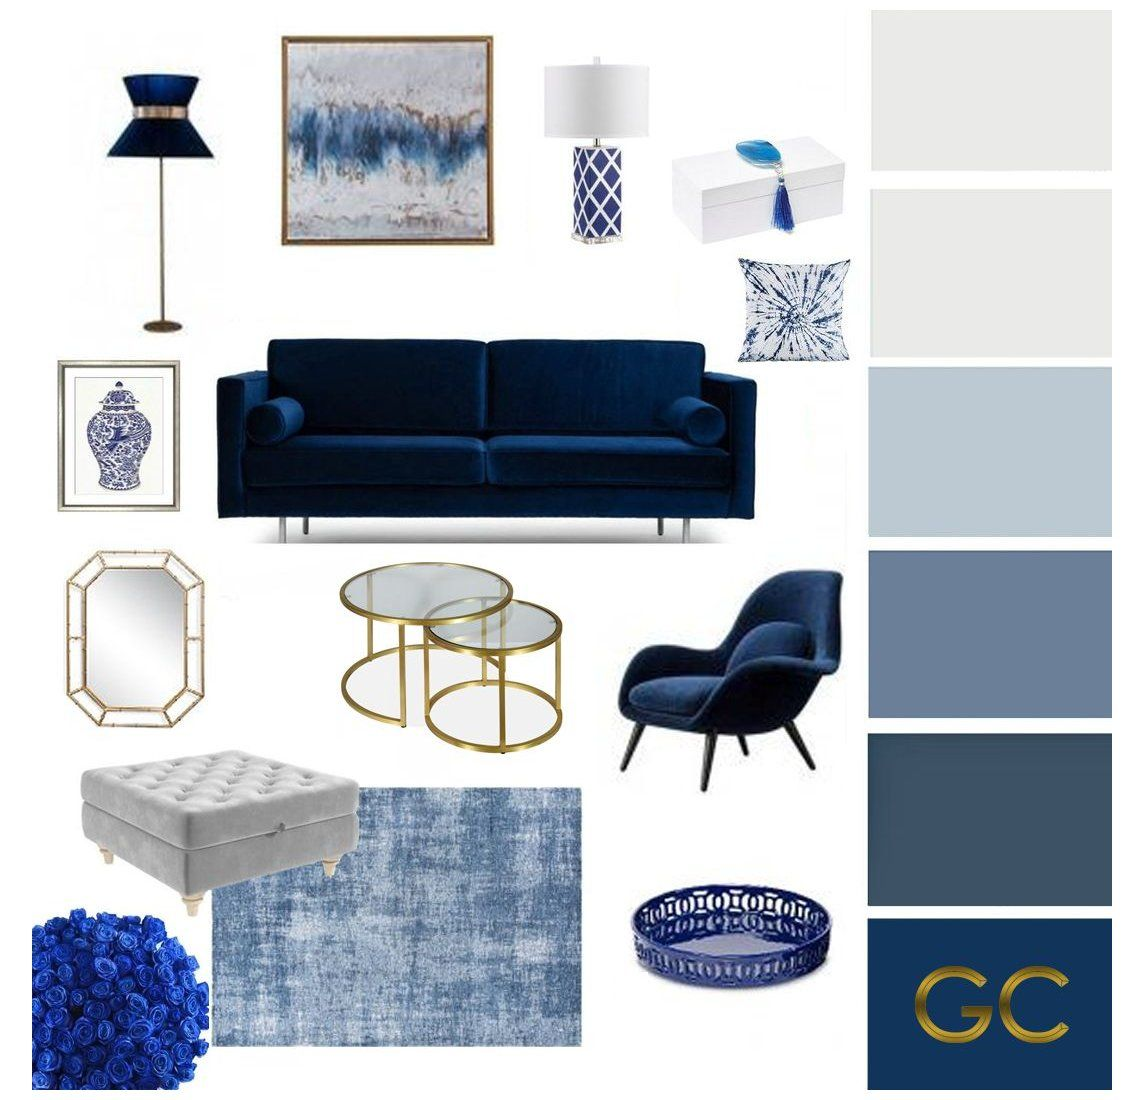 Blue Moodboard Living Room Grey And White Living Room Furniture Greyandwhitel In 2021 Blue Furniture Living Room Blue Living Room Decor Blue Sofas Living Room